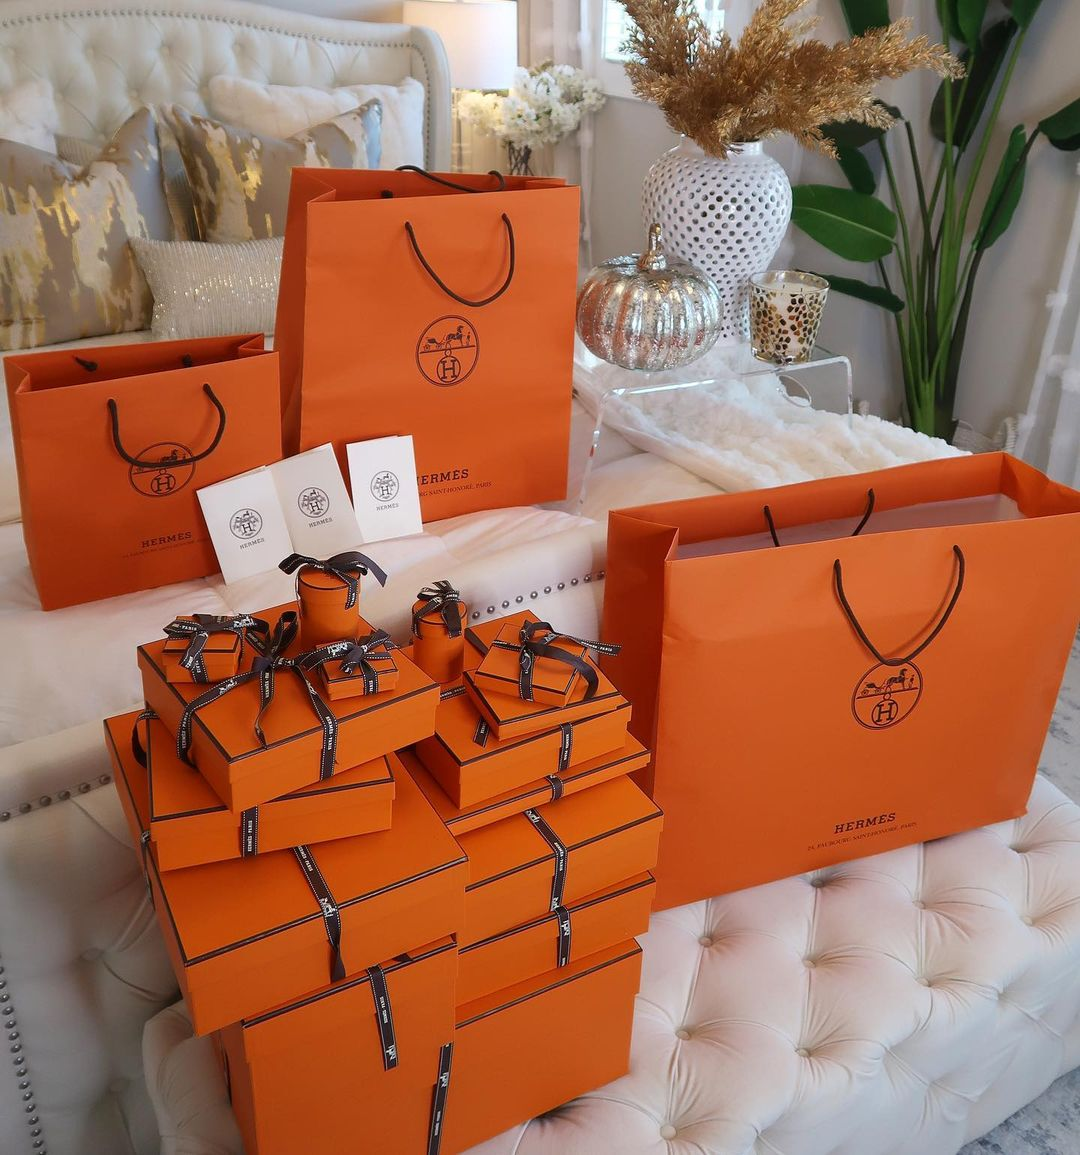 Many Hermes Bags and Boxes